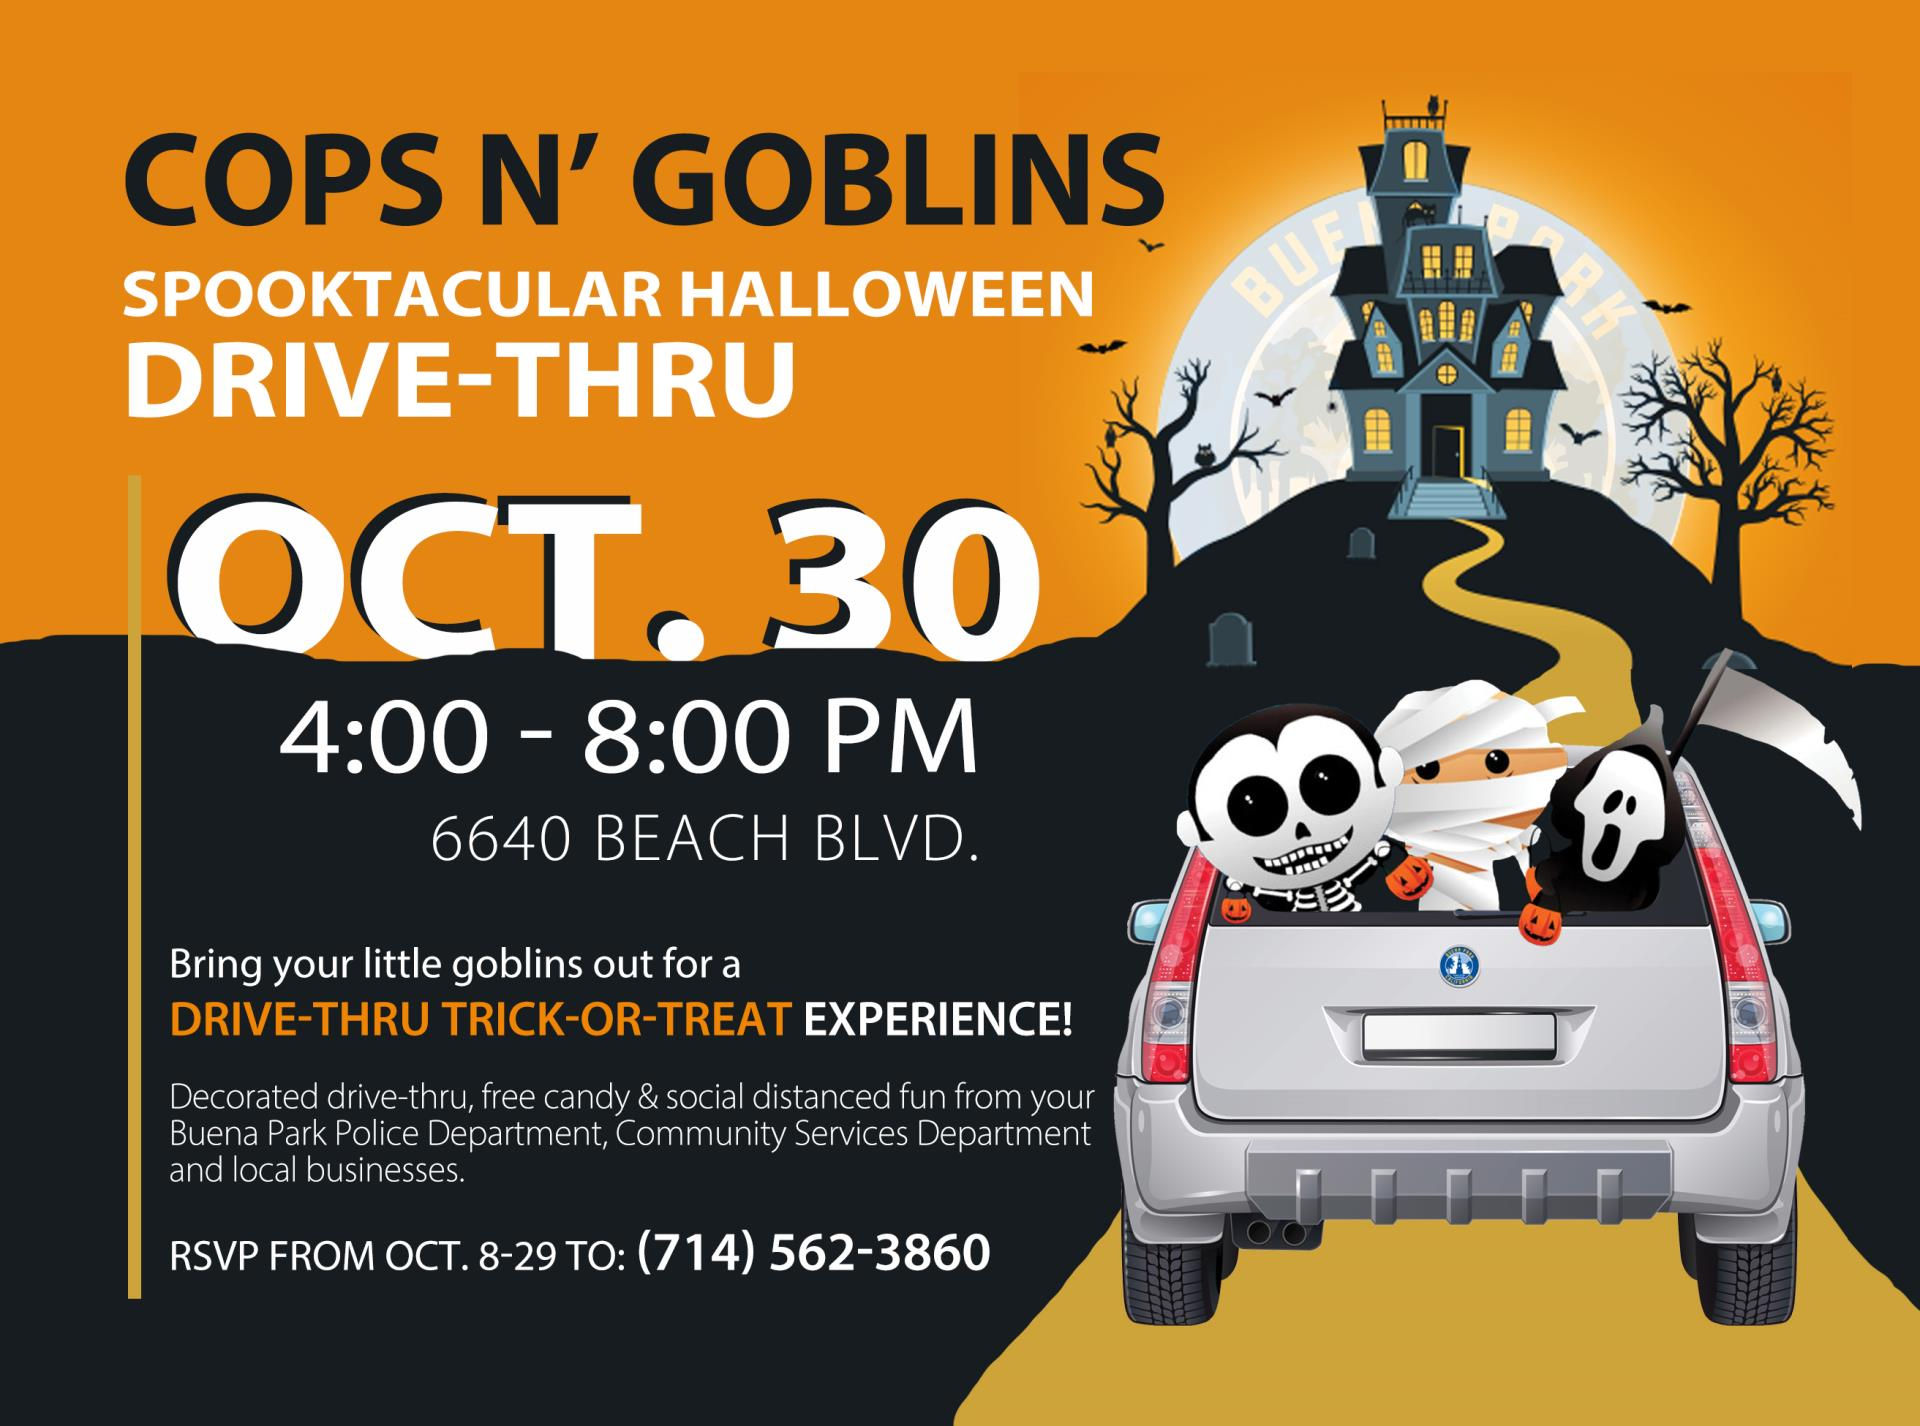 Family-Friendly-Orange-County-Events-Like-the-Buena-Park-Cops-N-Goblins